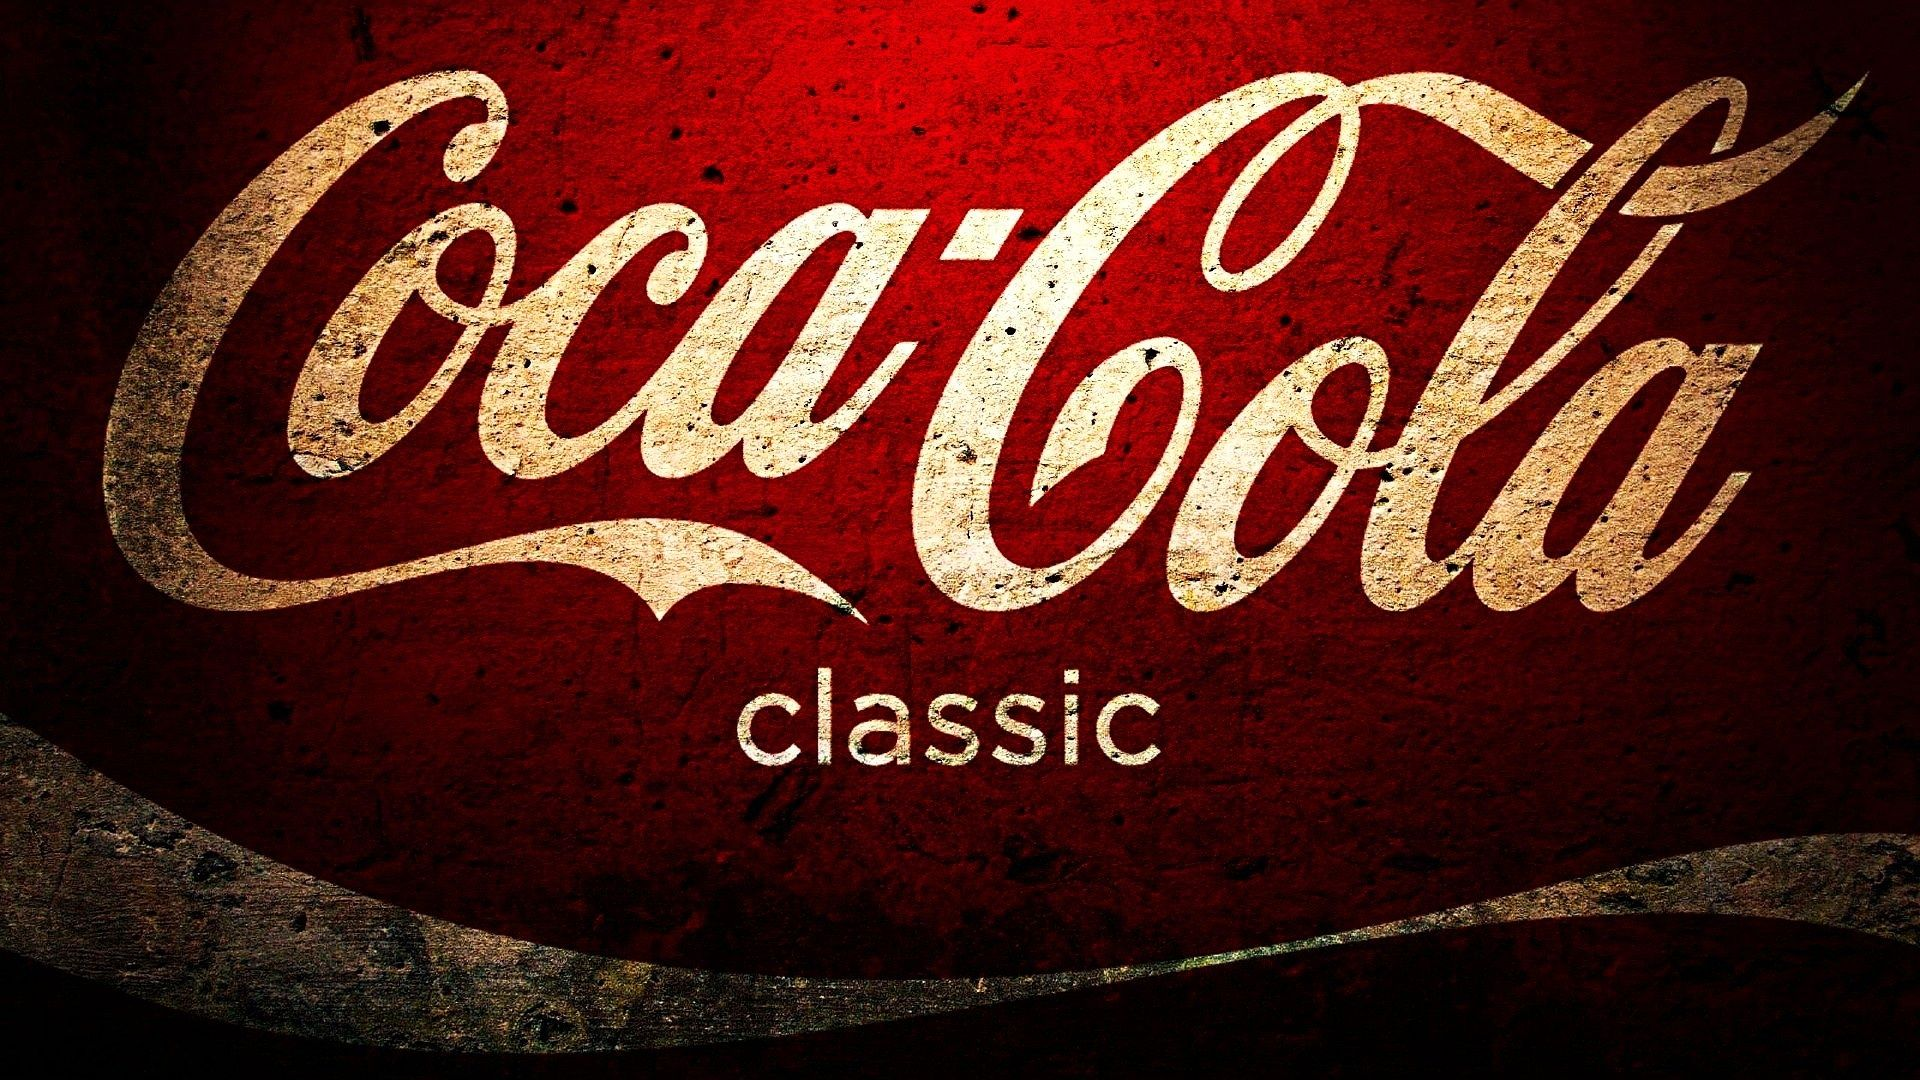 Coca Cola Free Wallpaper and Background